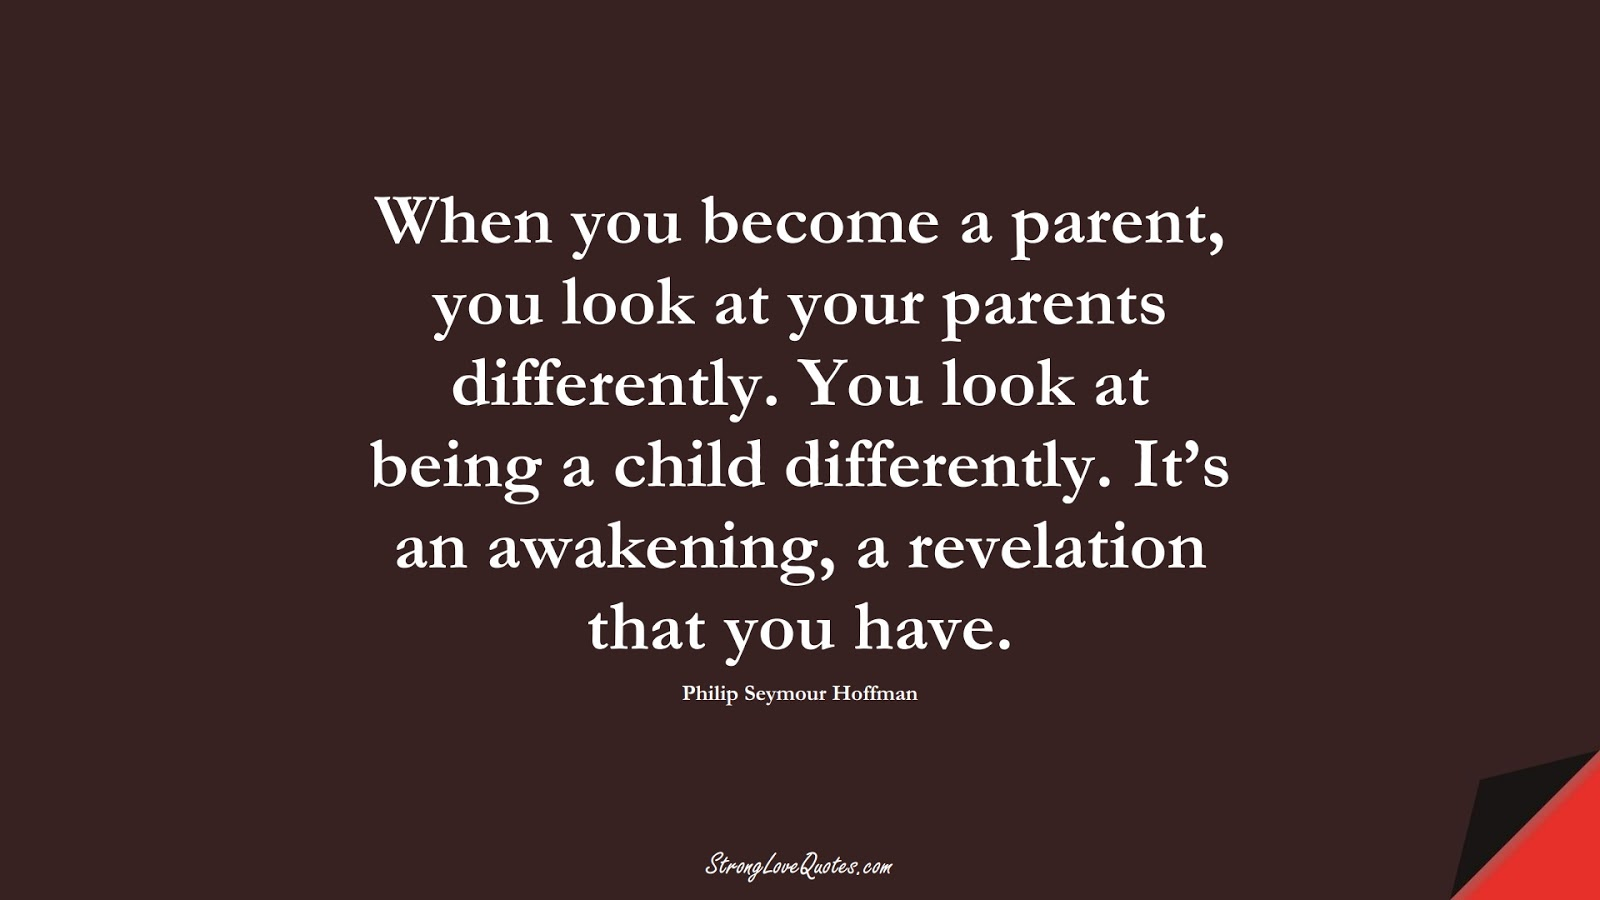 When you become a parent, you look at your parents differently. You look at being a child differently. It's an awakening, a revelation that you have. (Philip Seymour Hoffman);  #EducationQuotes